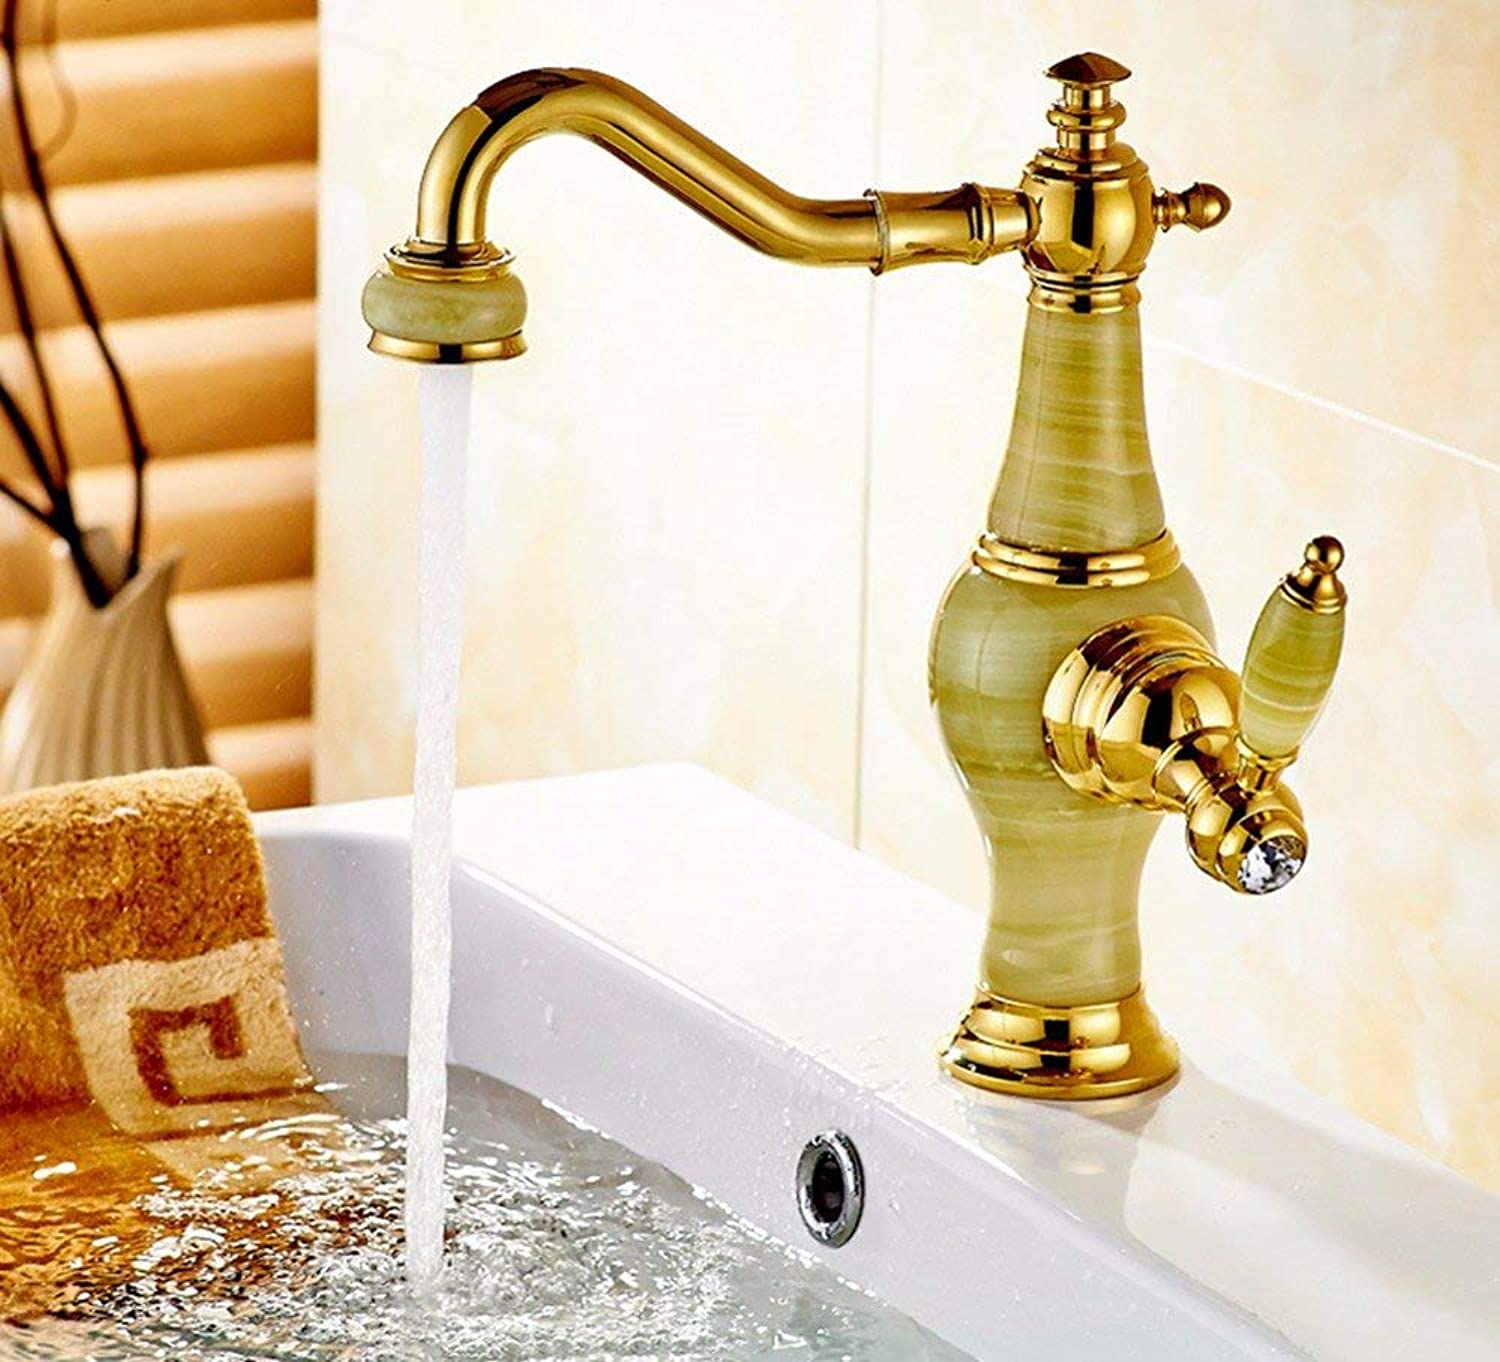 CFHJN HOME European style copper basin hot and cold washing the face of jade water taps